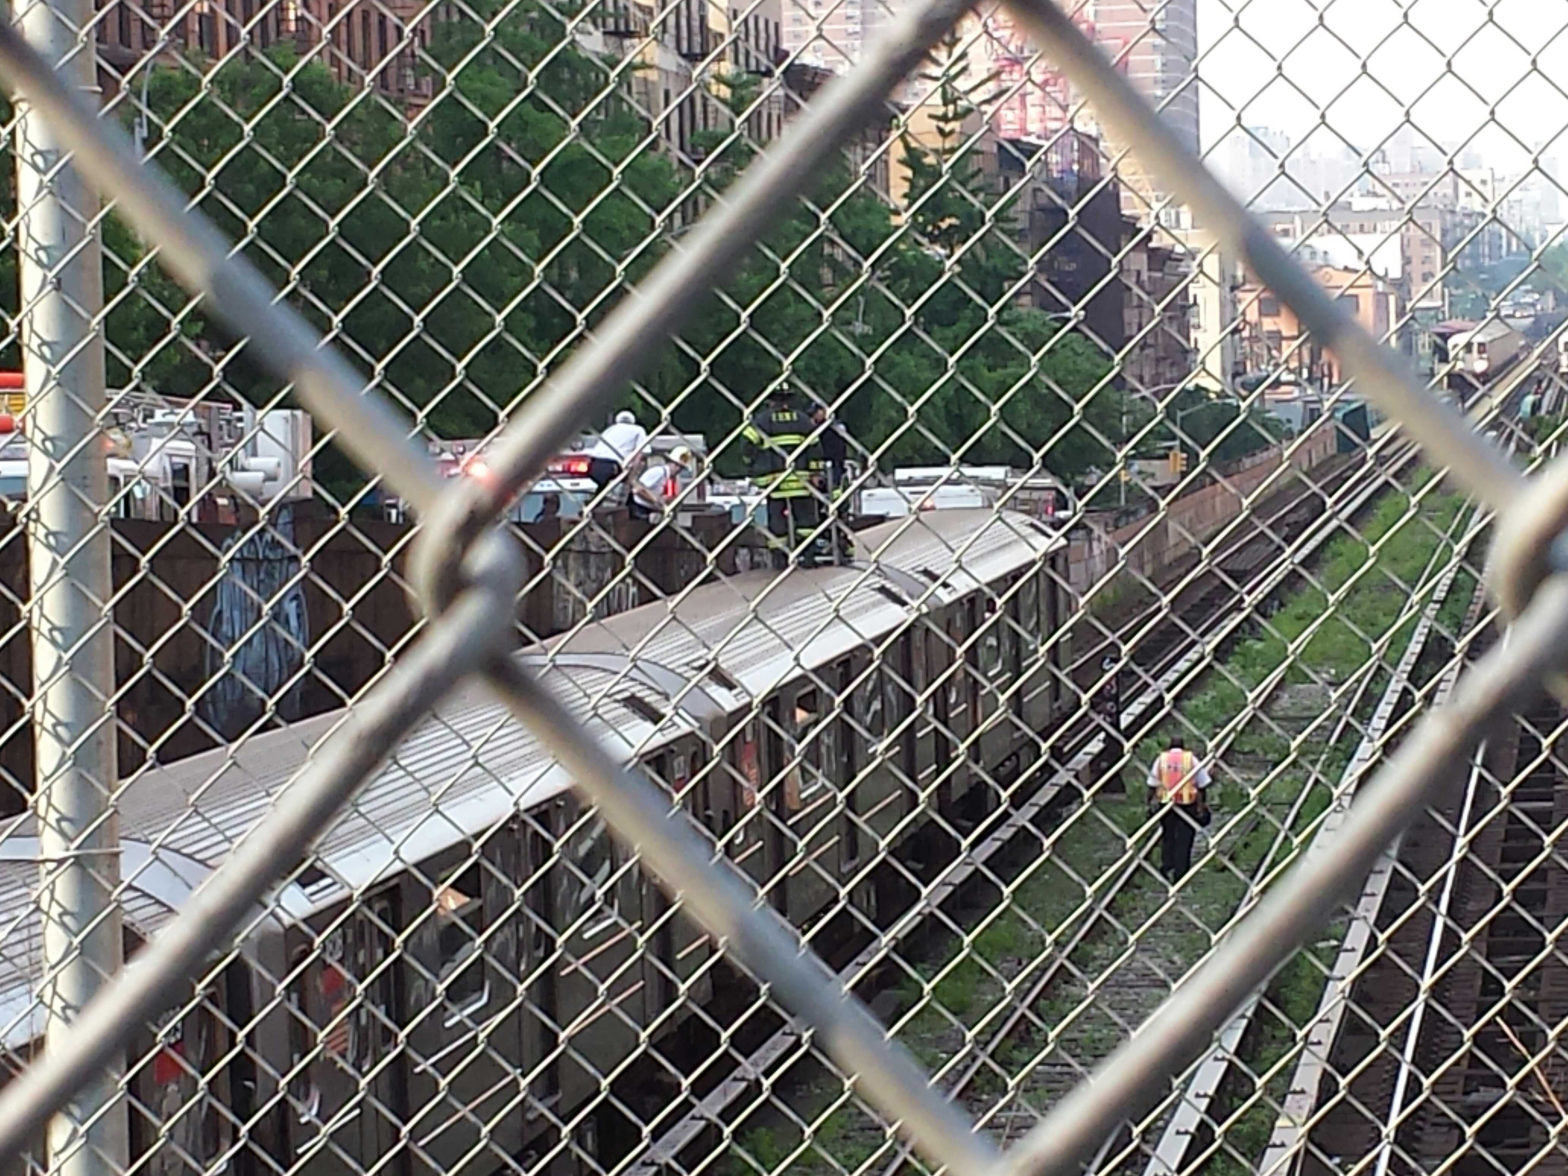 A 1-line subway train derailed in New York, New York, on May 29, 2013. (Steve Silva)